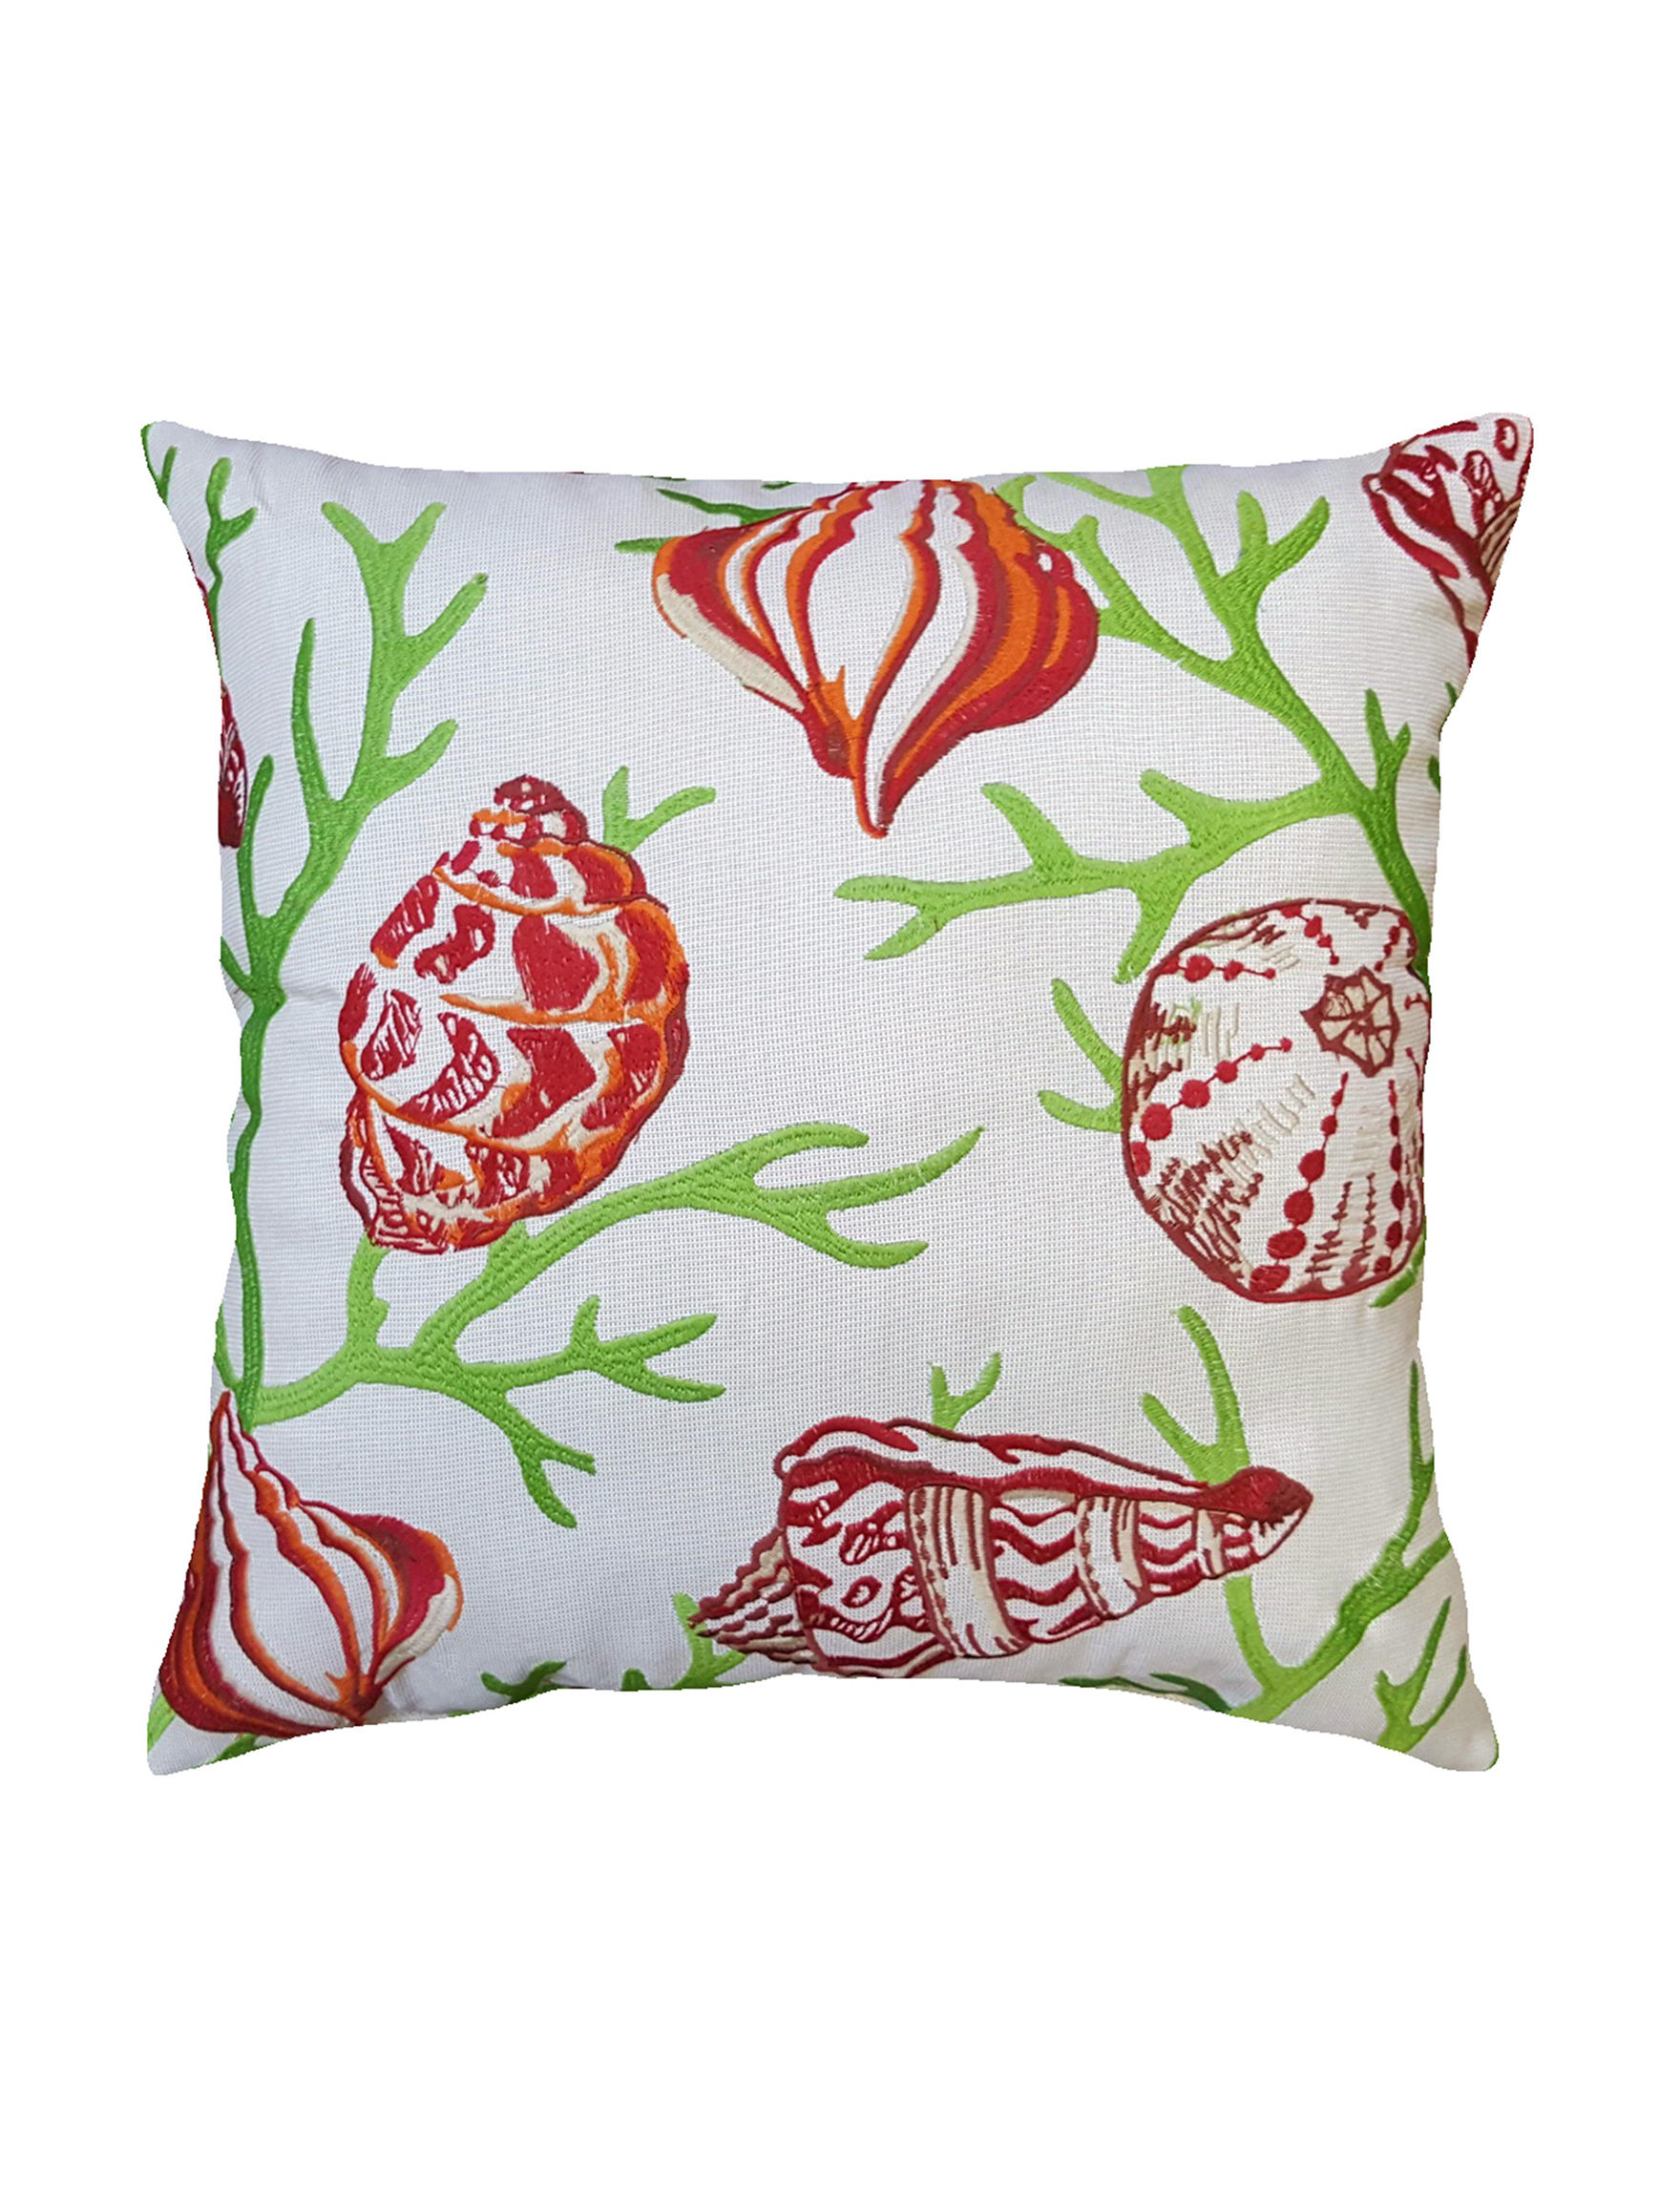 Home Fashions International Green Multi Decorative Pillows Outdoor Decor